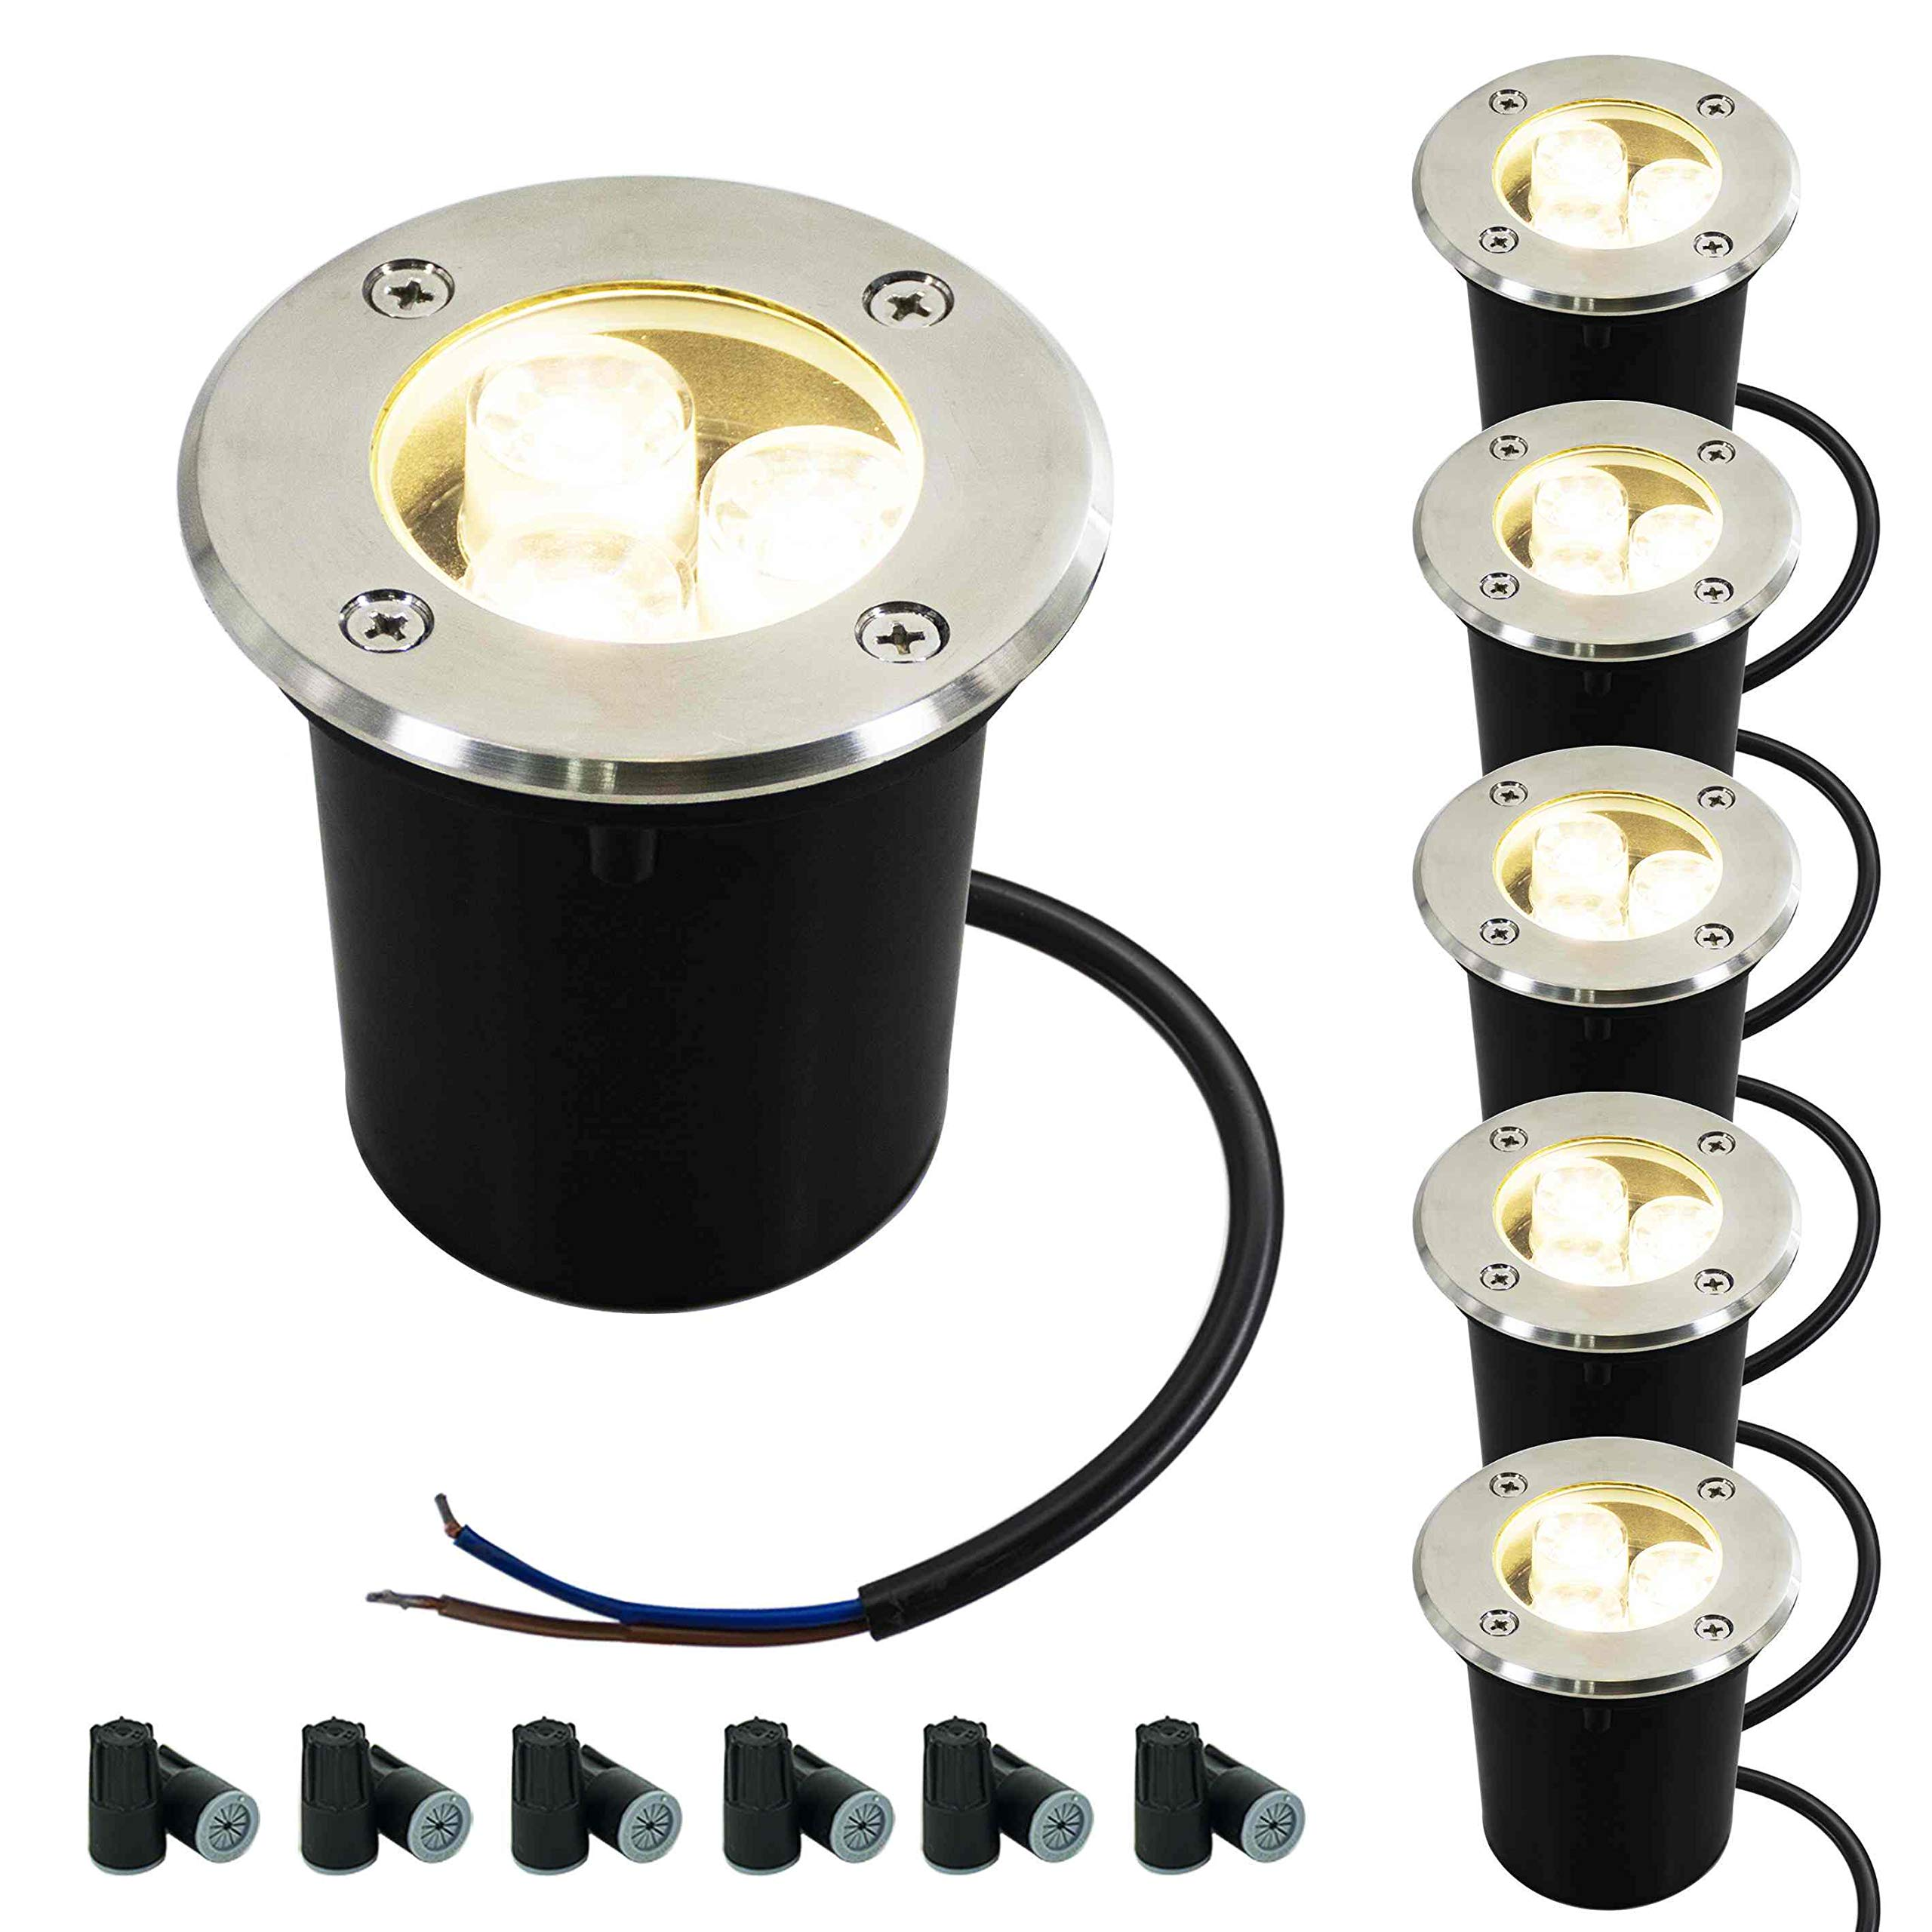 JESLED 3W LED In Ground Well Lights, 12V 24V 3000K Warm White, Low Voltage Landscape Lighting, IP67 Waterproof Outdoor Garden Pathway Lights for Driveway, Deck, Yard Tree, with Wire Connectors(6 Pack)